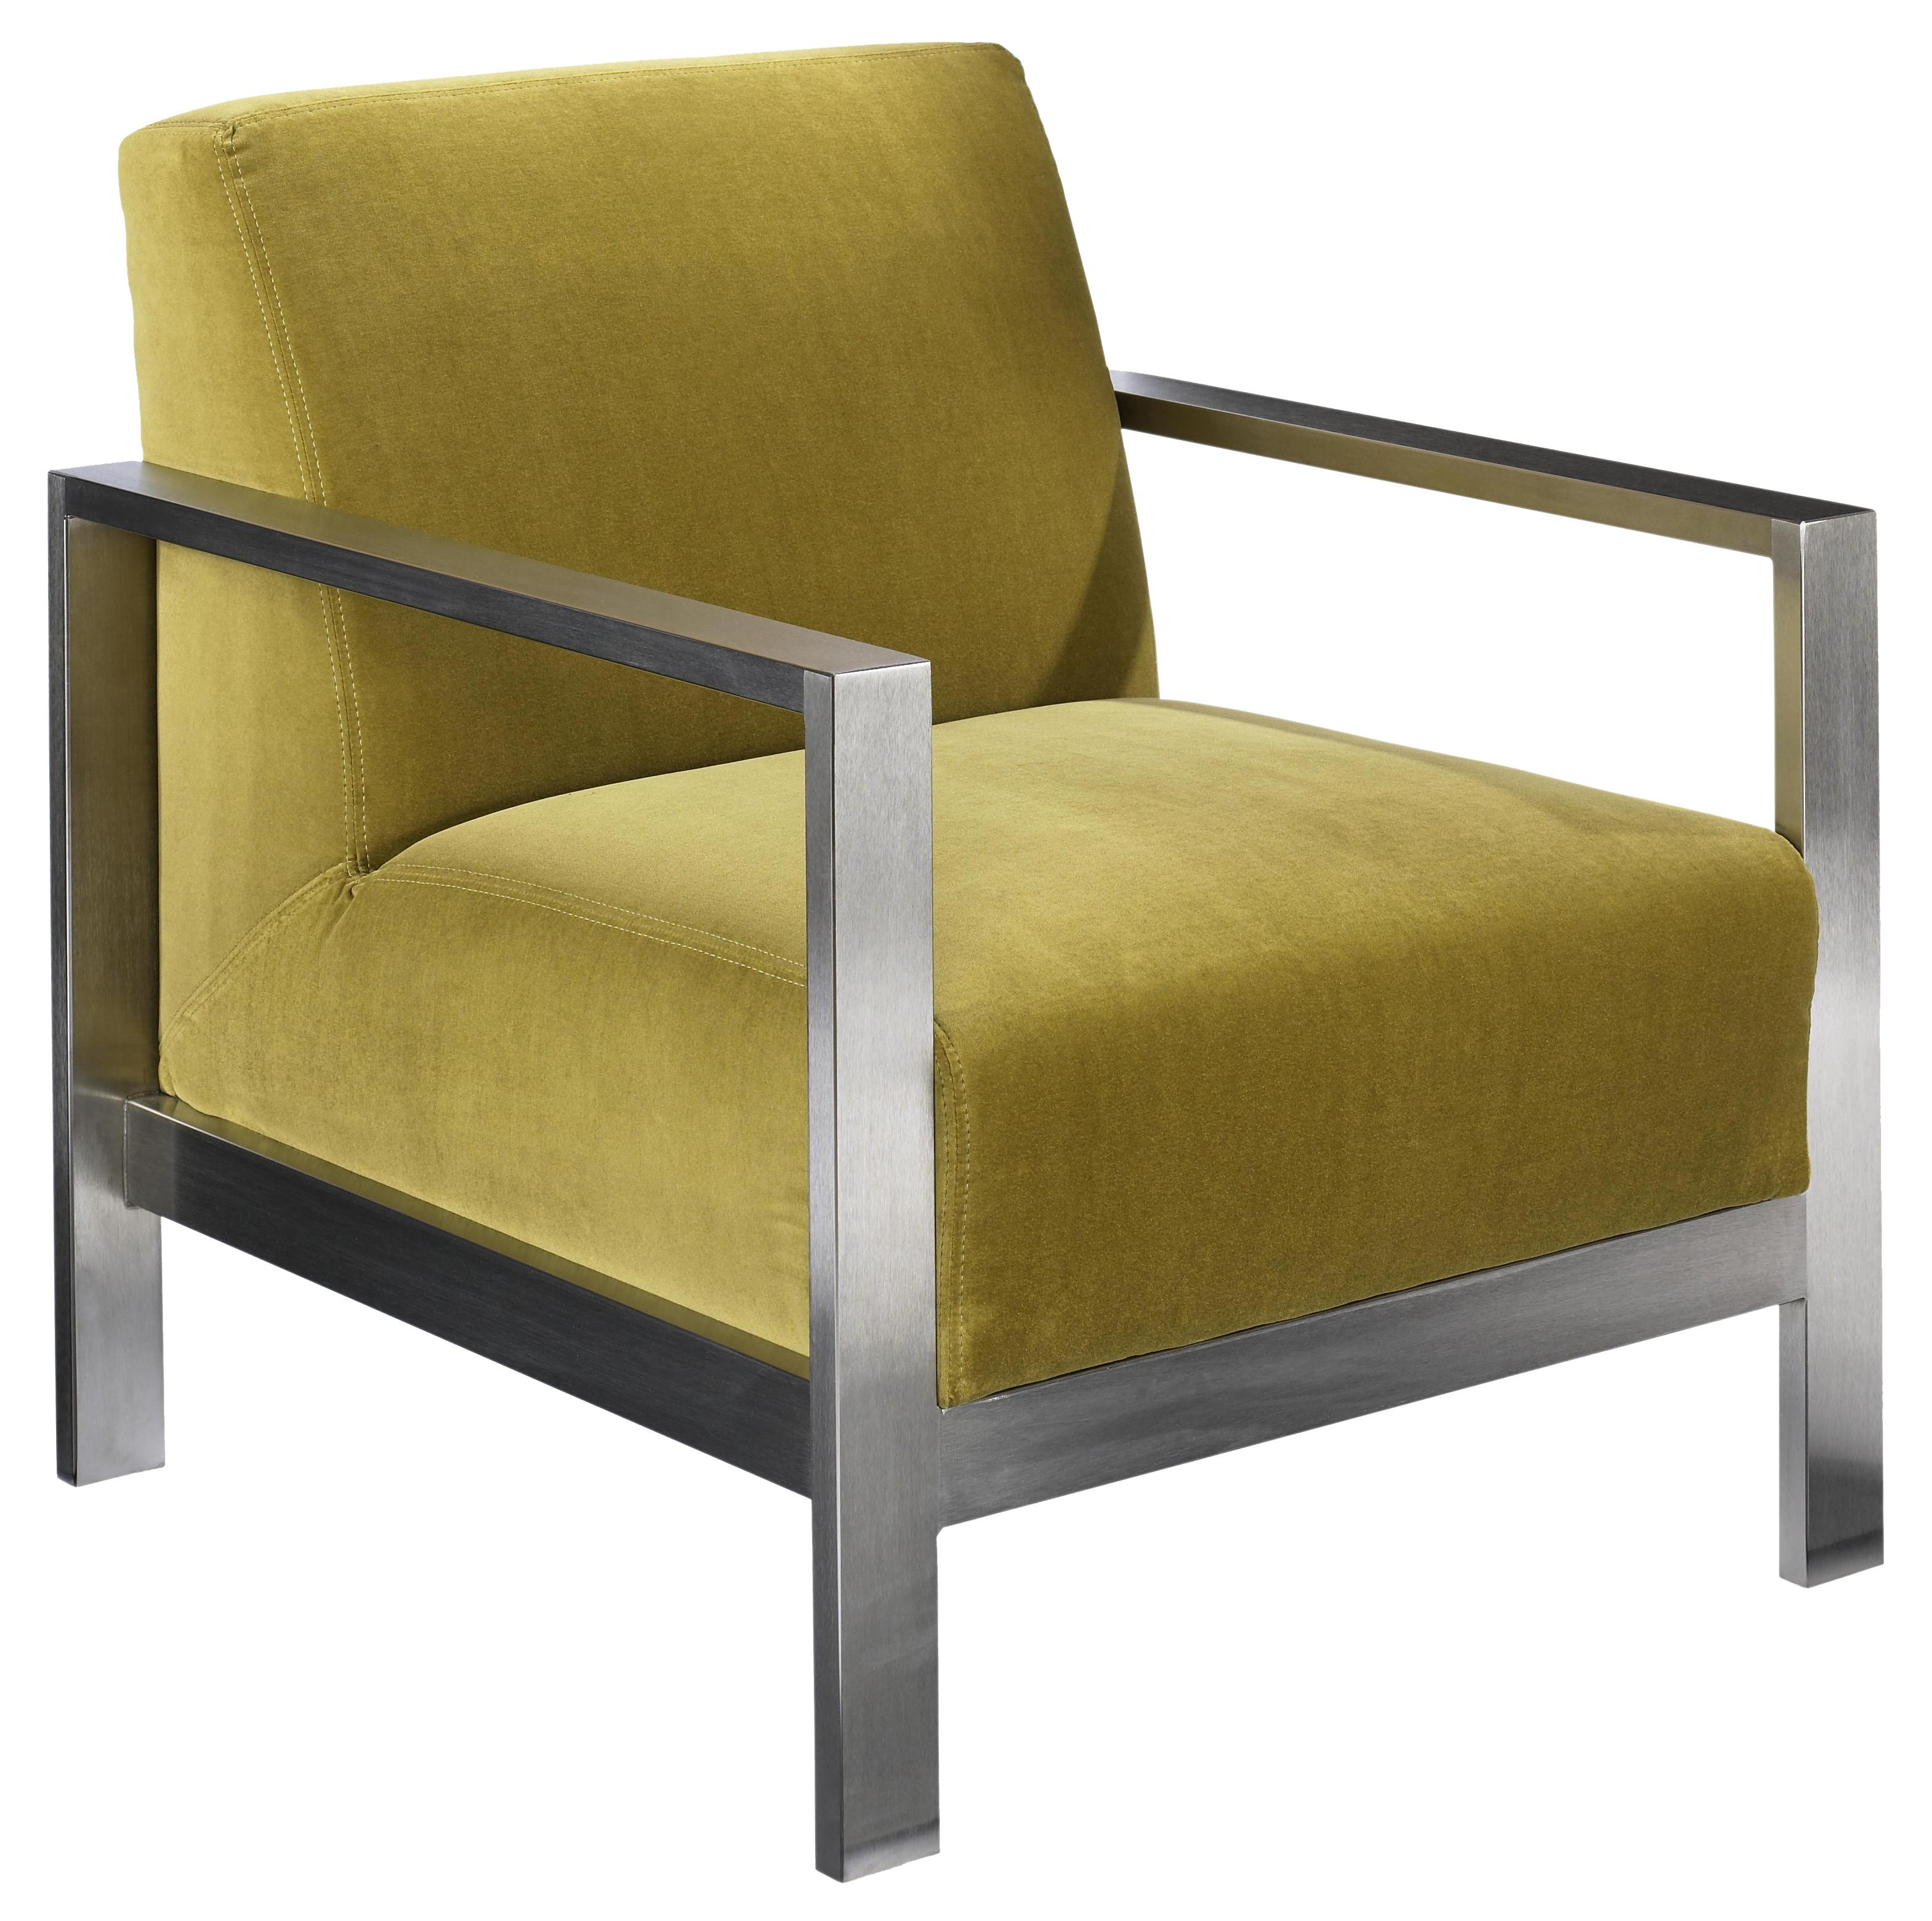 Accentuates Morrissey Metal Accent Chair by Jonathan Louis at Michael Alan Furniture & Design